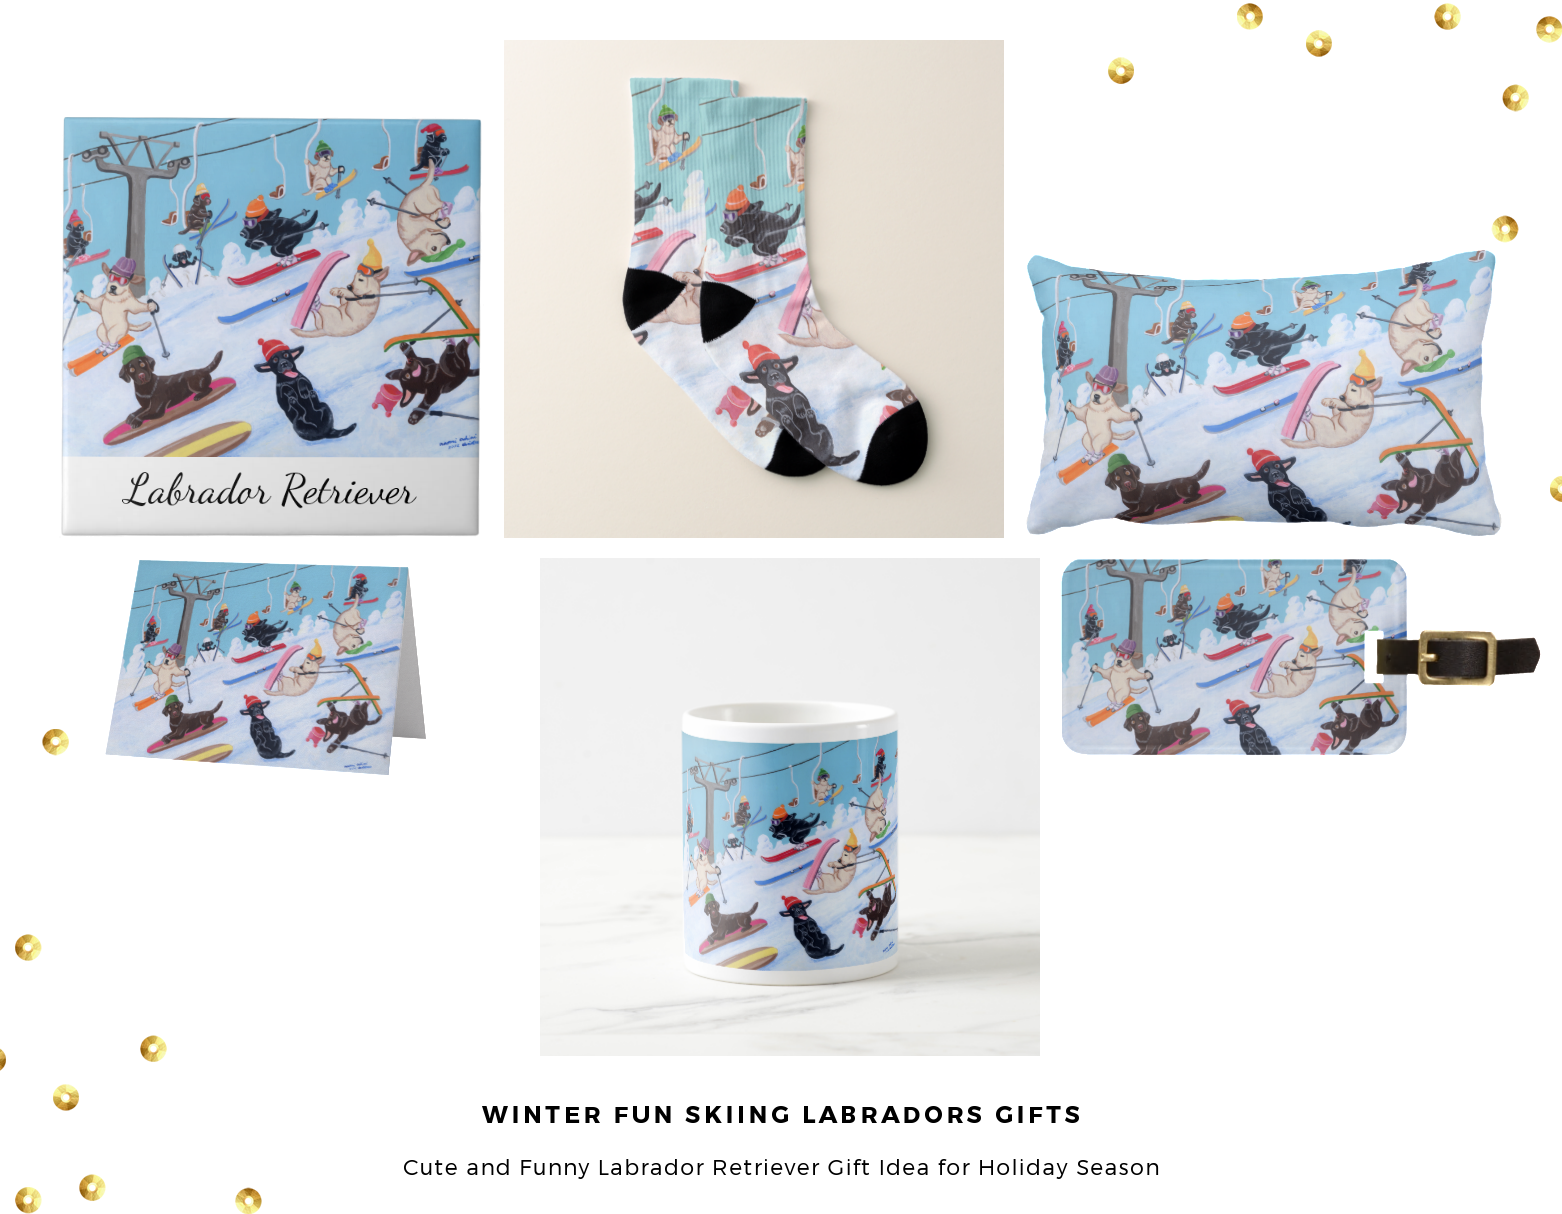 Winter Fun Skiing Labrador Gift Collection @zazzle